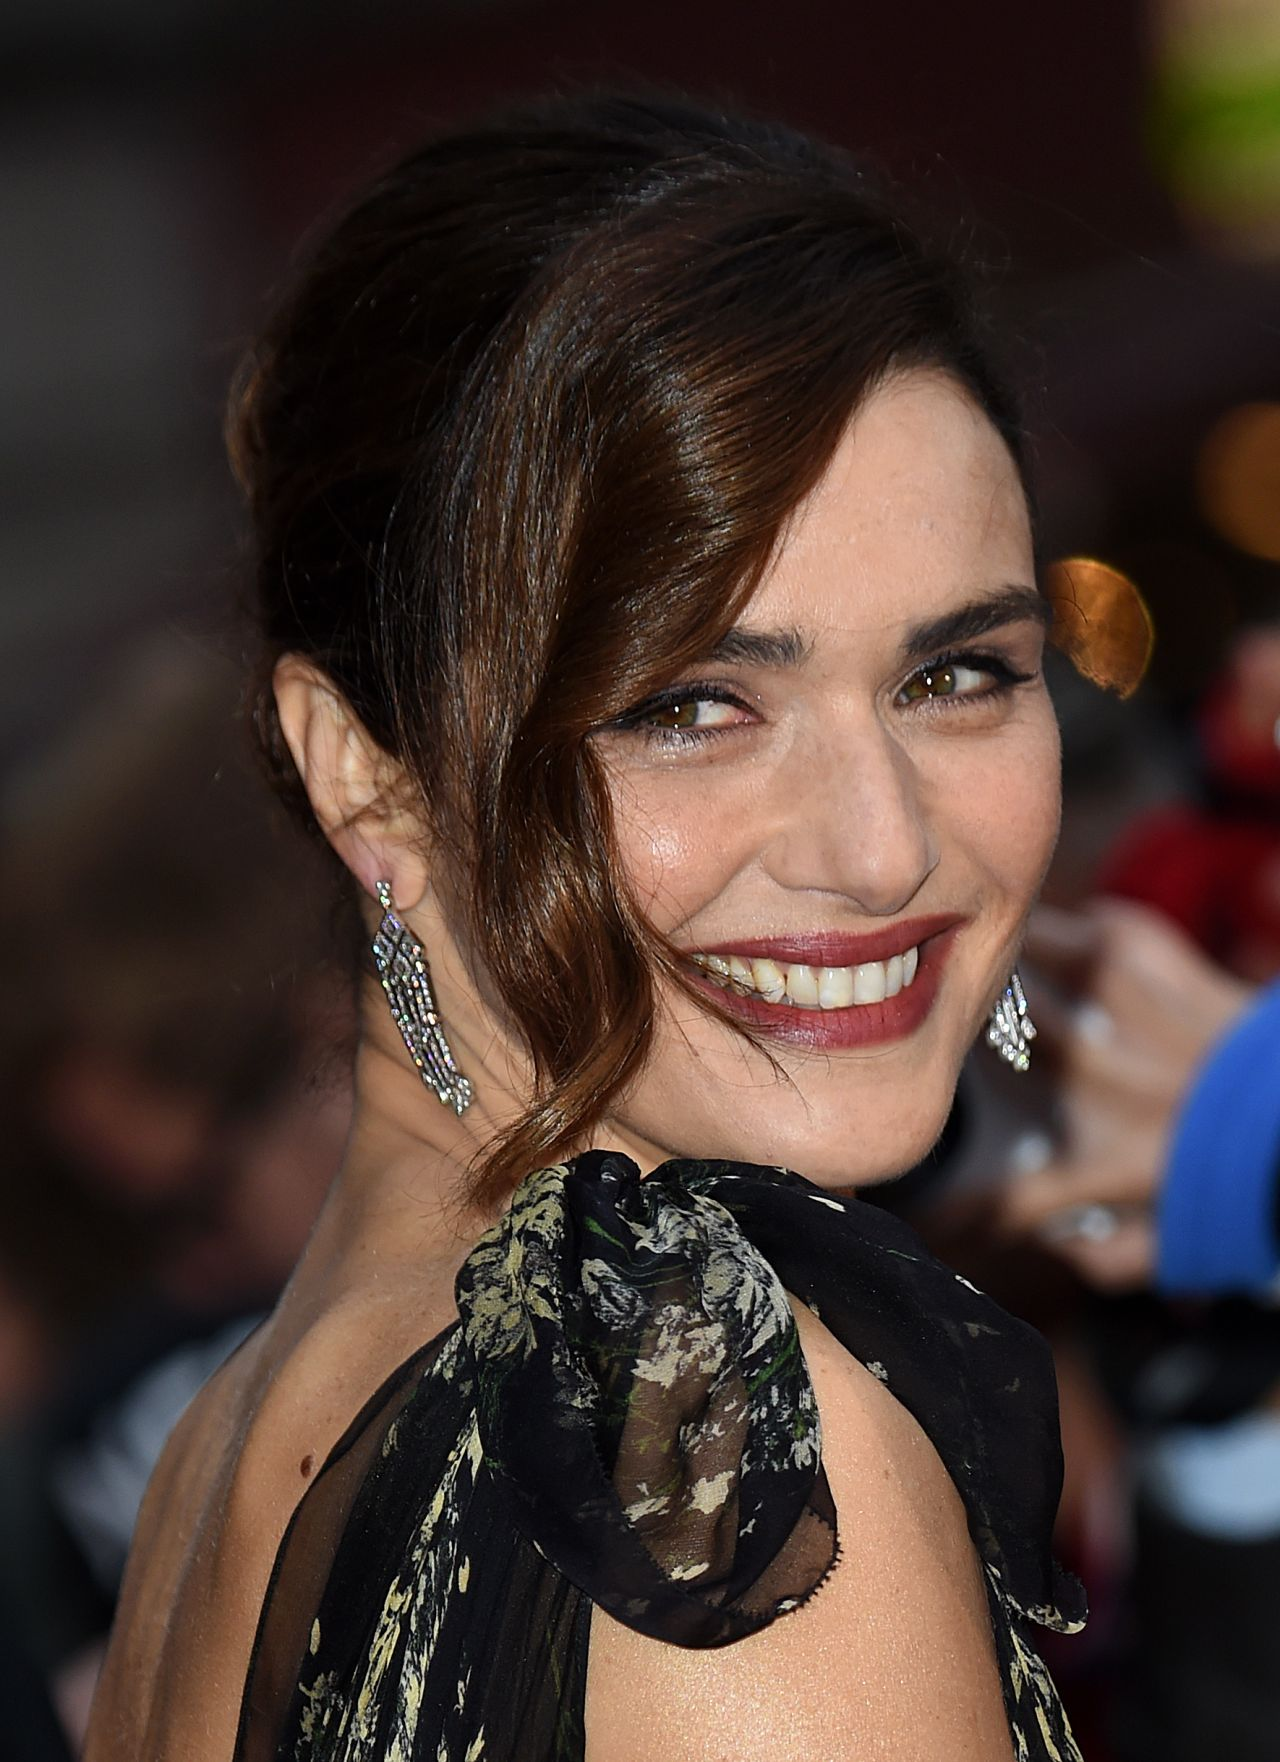 rachel-weisz-the-lobster-dare-gala-bfi-london-film-festival_7